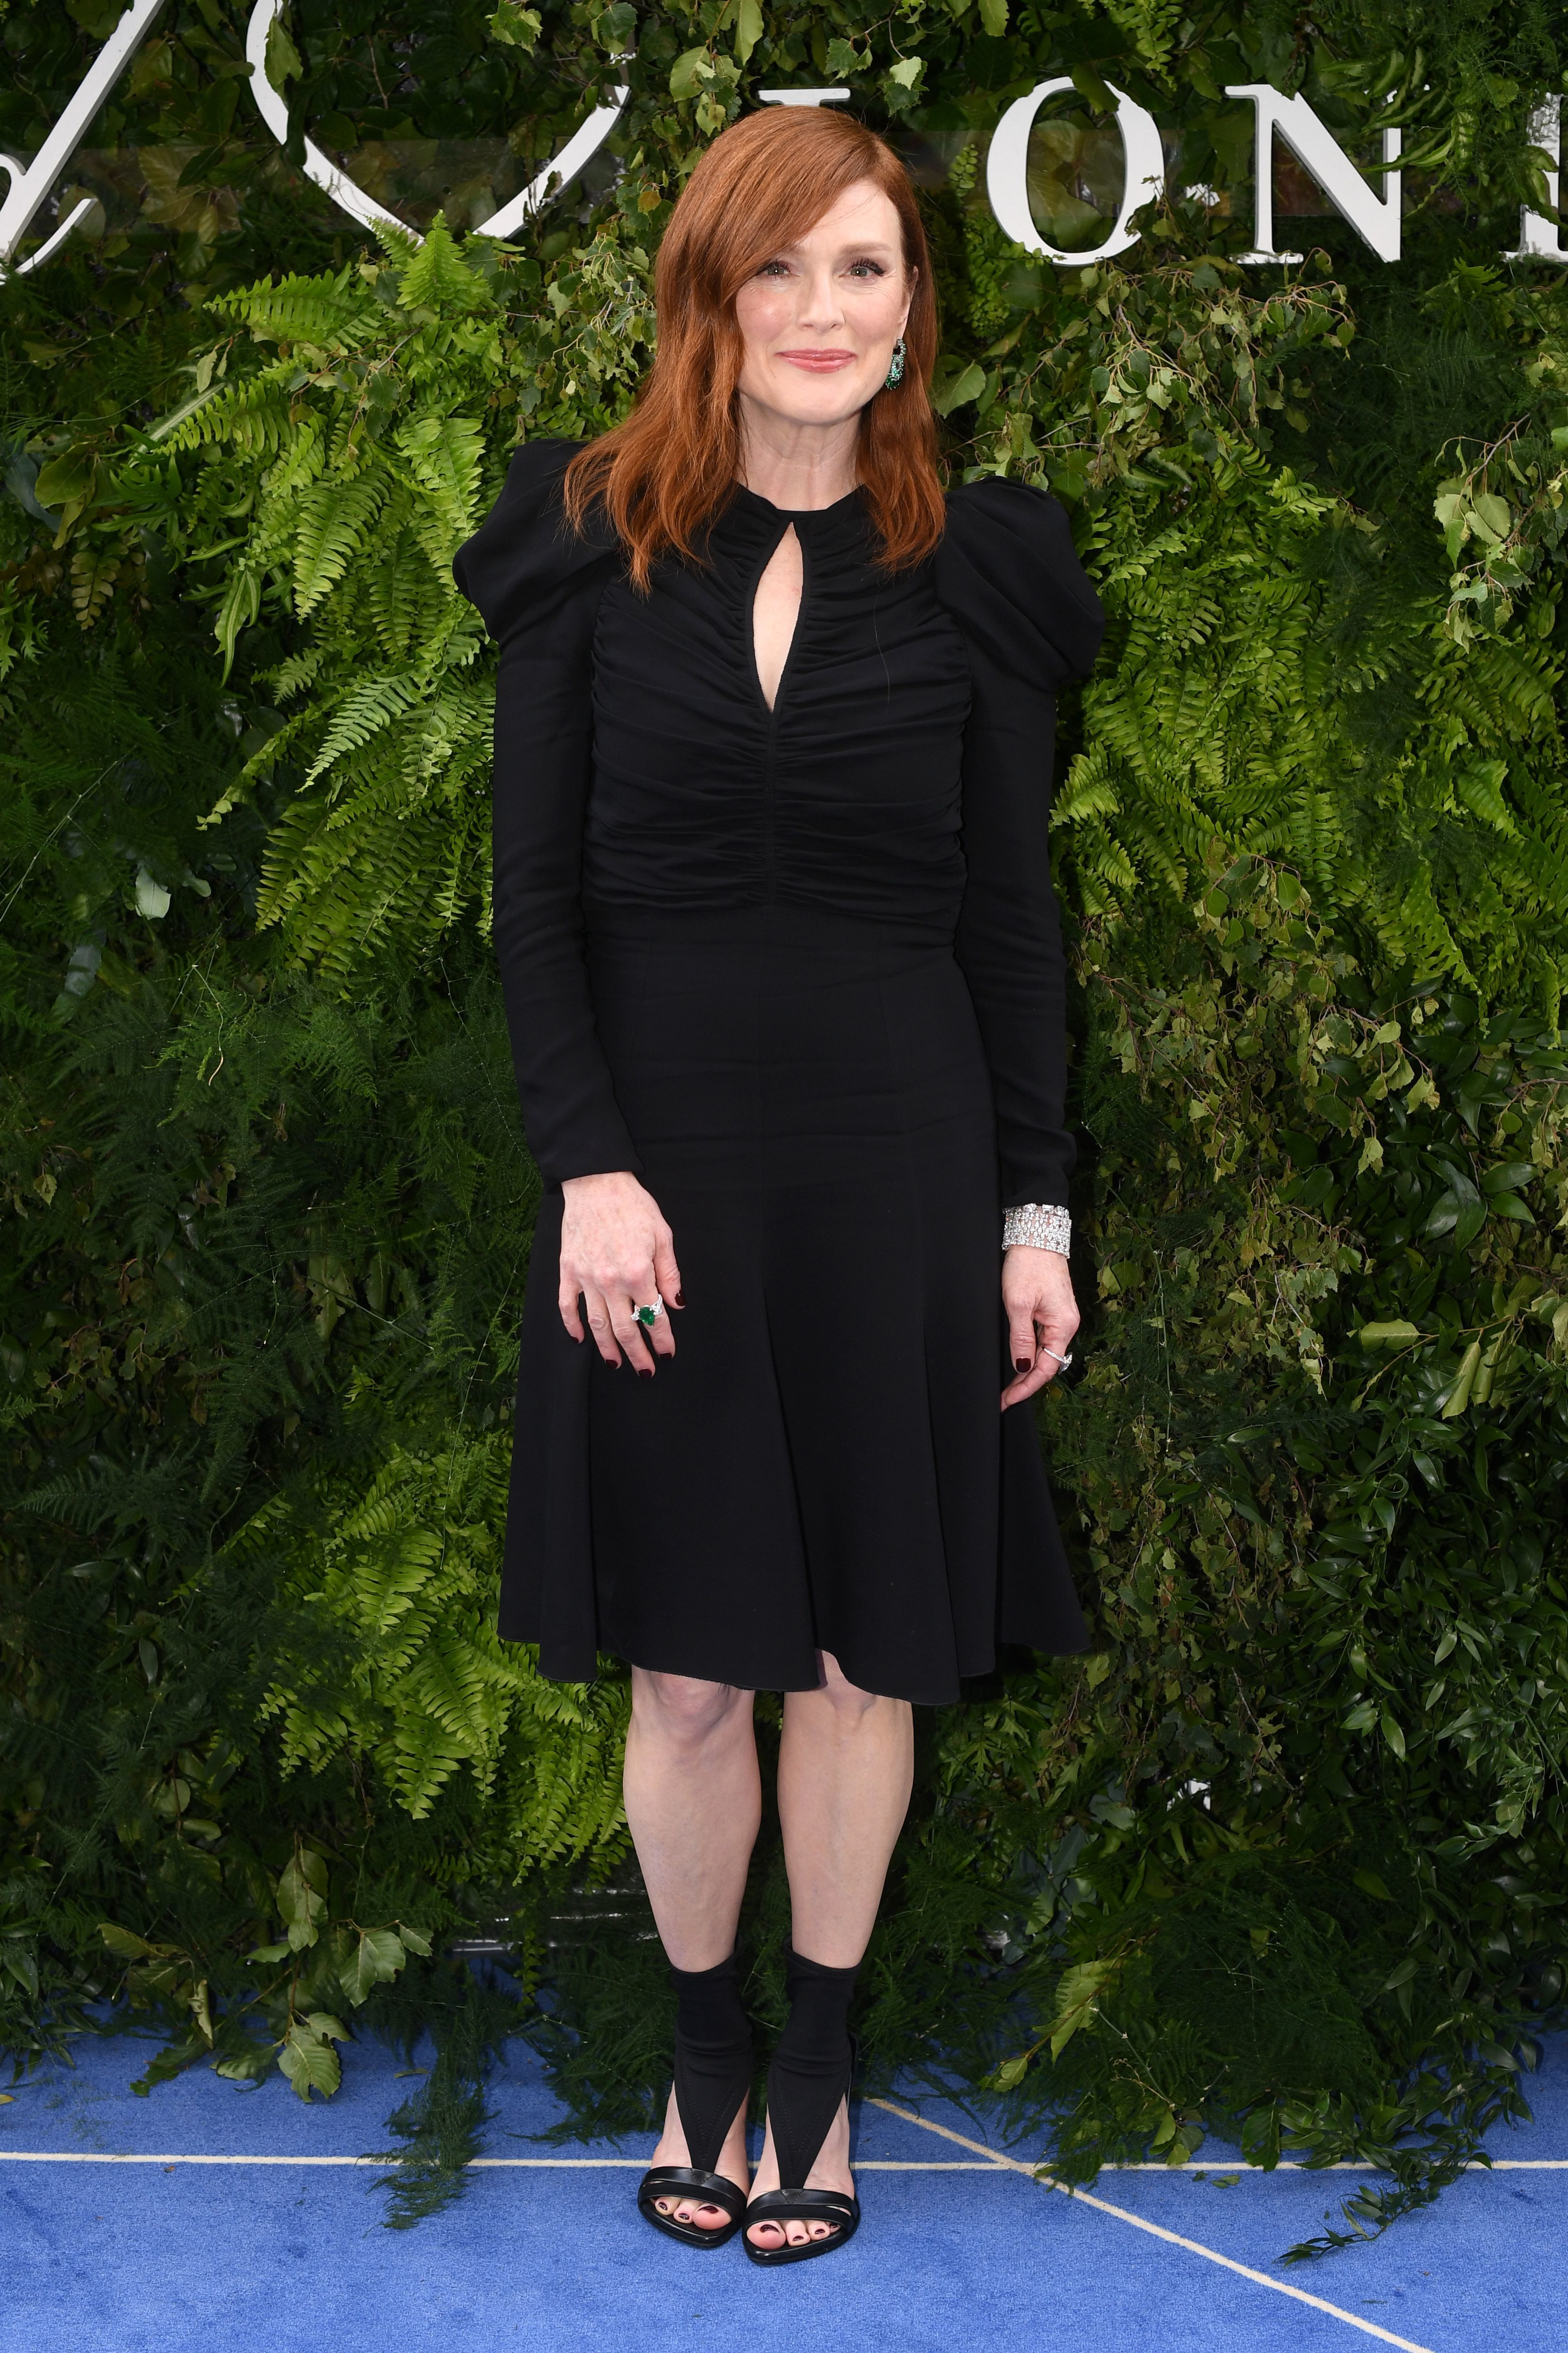 Julianne Moore attends the Chopard Flagship Boutique reopening party in London on June 17, 2019.